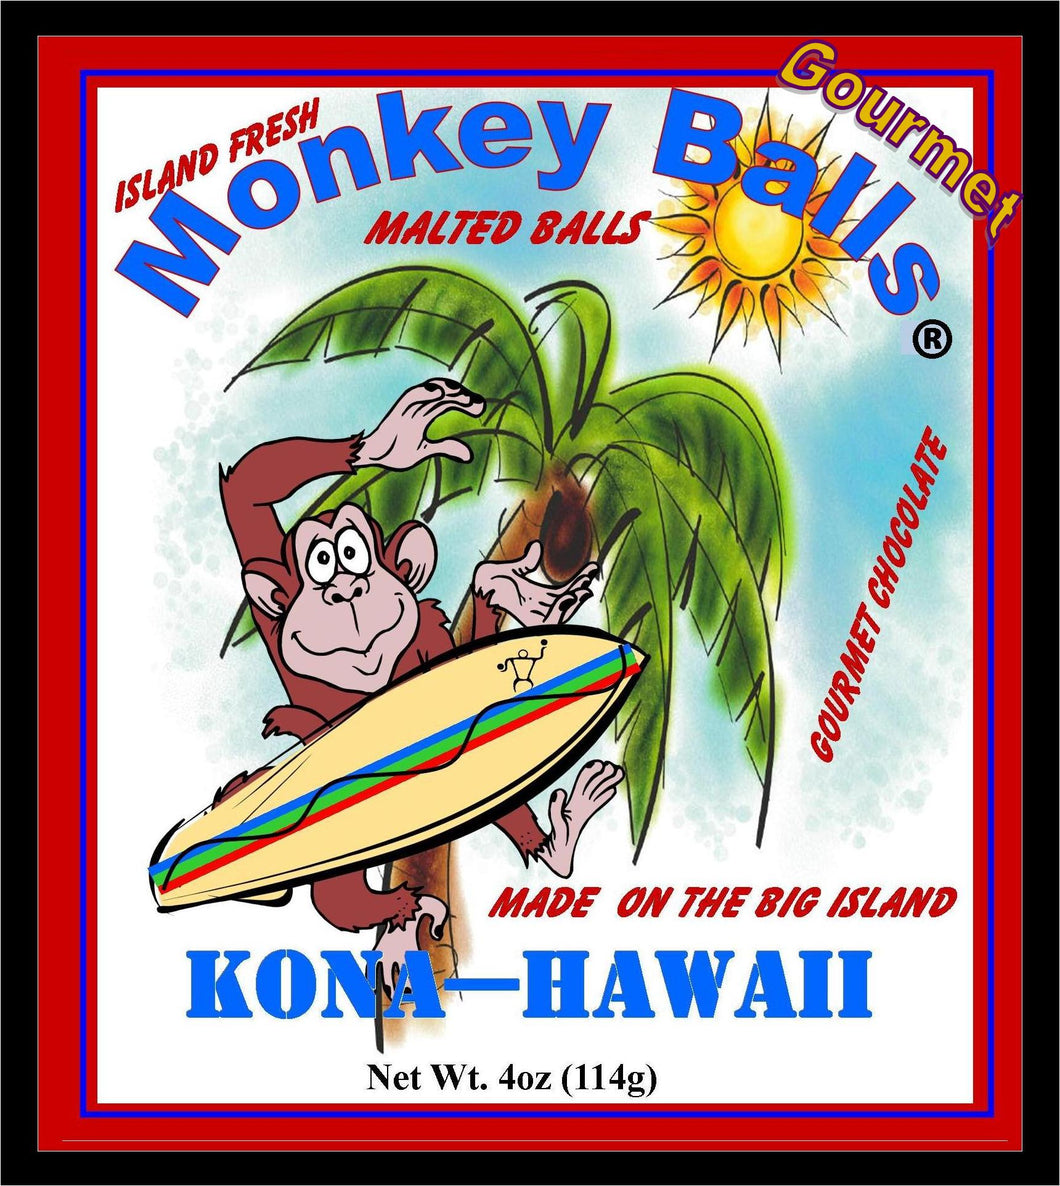 Monkey Balls - Lilikoi Malted Balls - The Original Donkey Ball Store